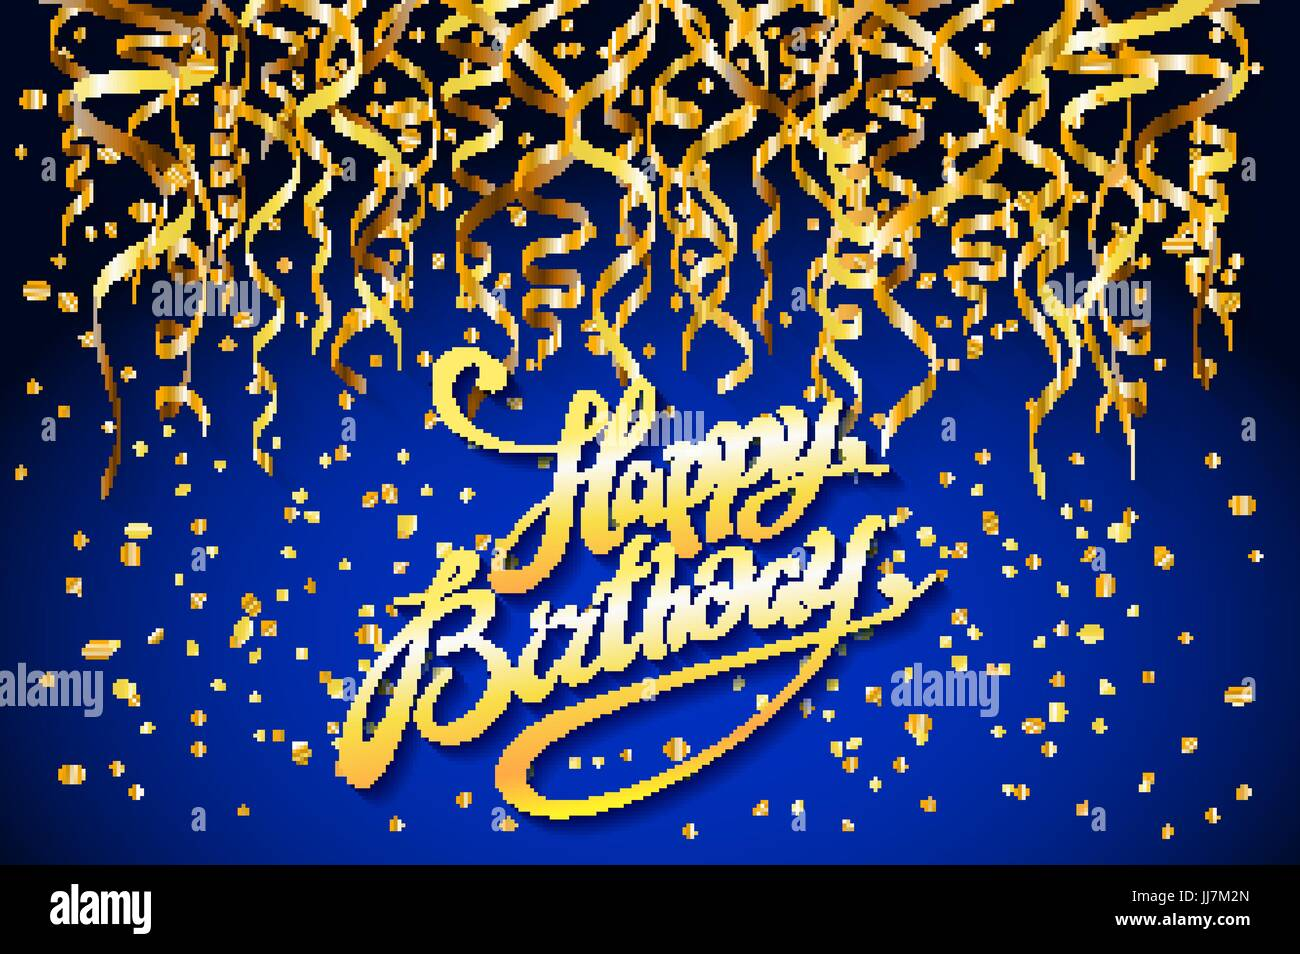 Concept Party On Blue Background Top View Happy Birthday Gold Confetti Vector Modern Flat Design Style Art Stock Vector Image Art Alamy